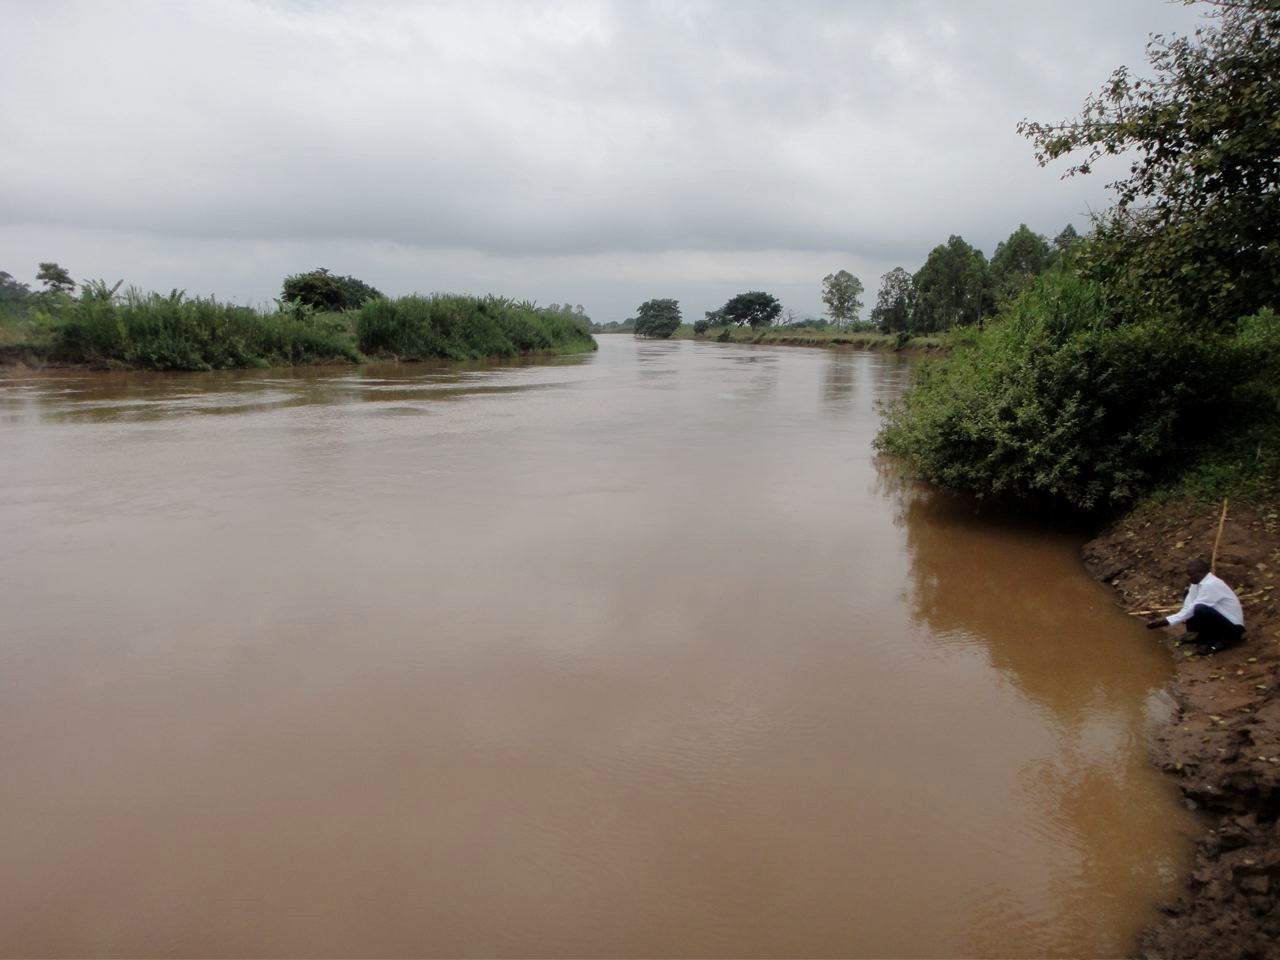 River Nzoia, one of LVNBA major rivers, passing through Budalangi Area (Picture by Mike Thibert)